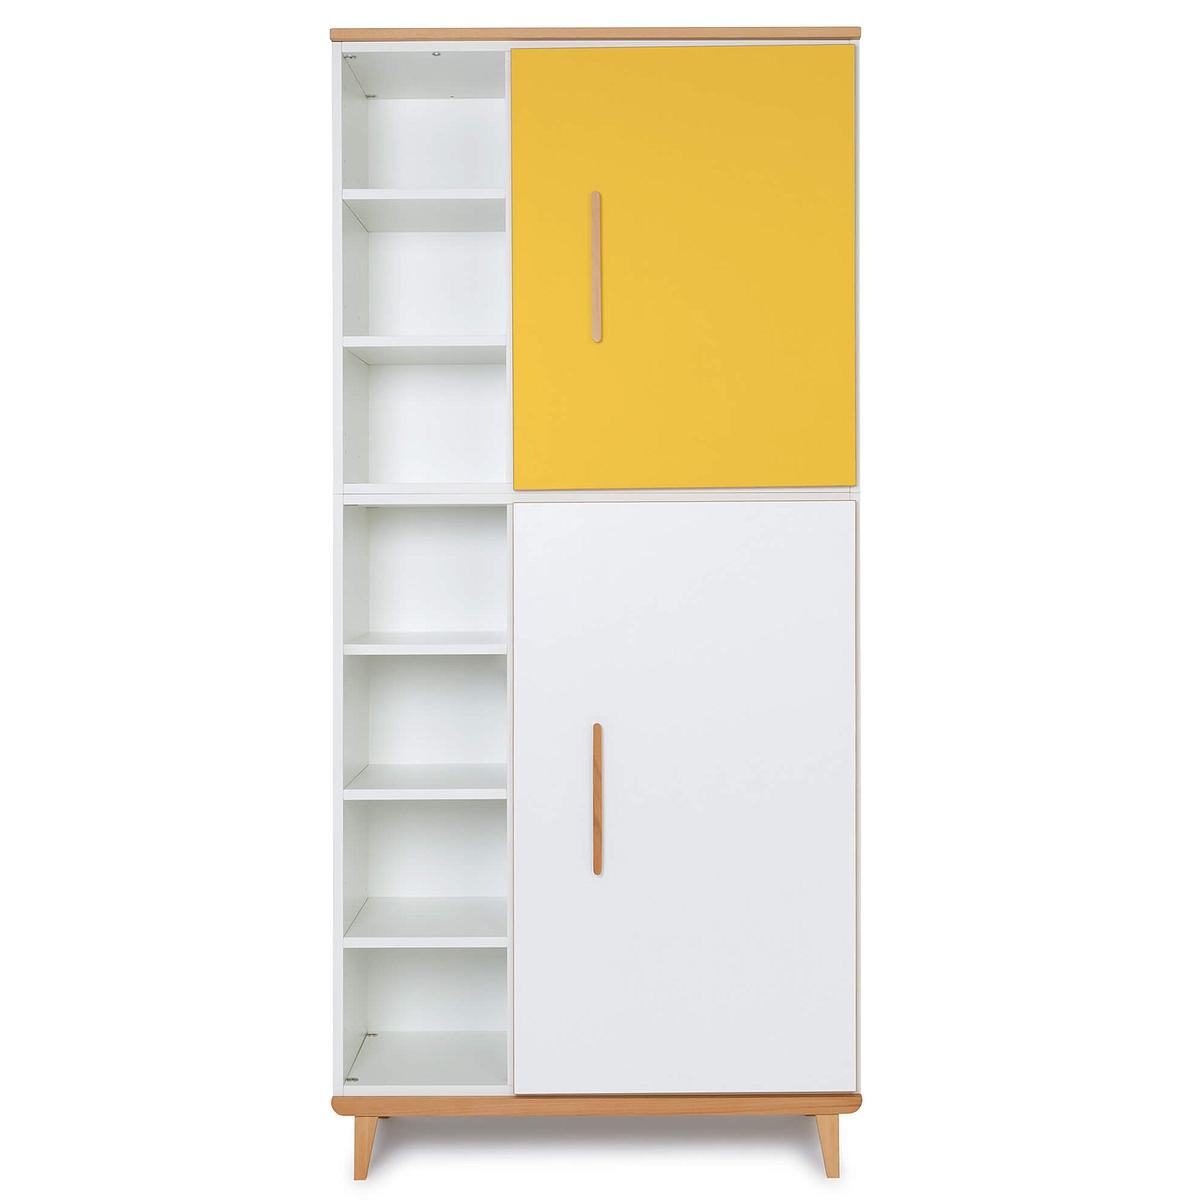 Kleiderschank 198cm 2-türig NADO sunshine yellow-white